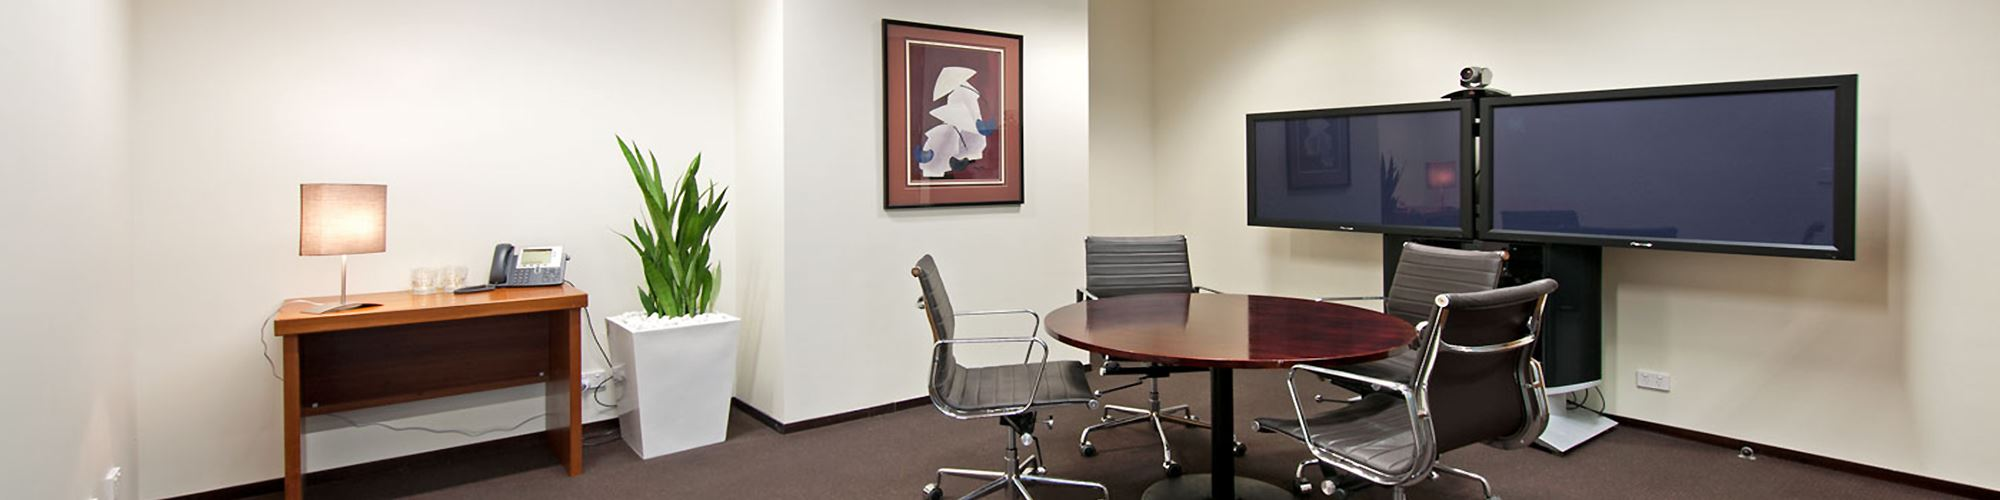 banner-the-realm-canberra-meeting-room.jpg